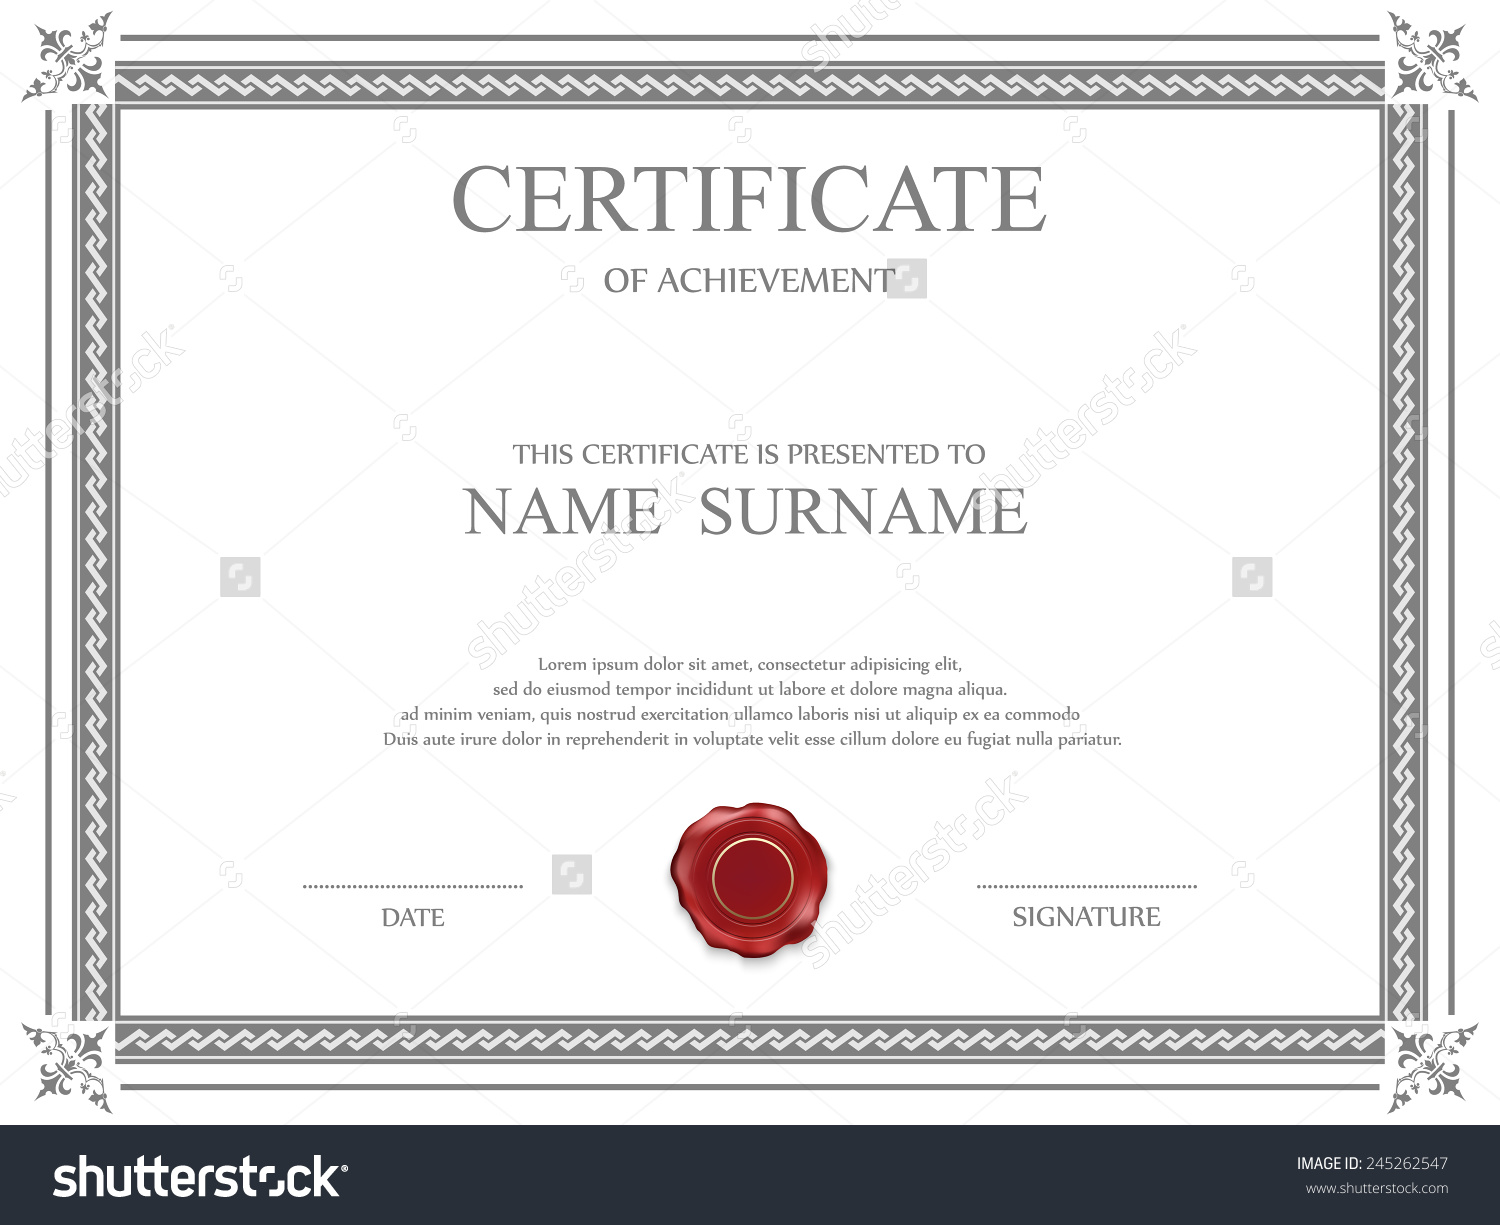 Share certificate template south africa planner template for Share certificate template